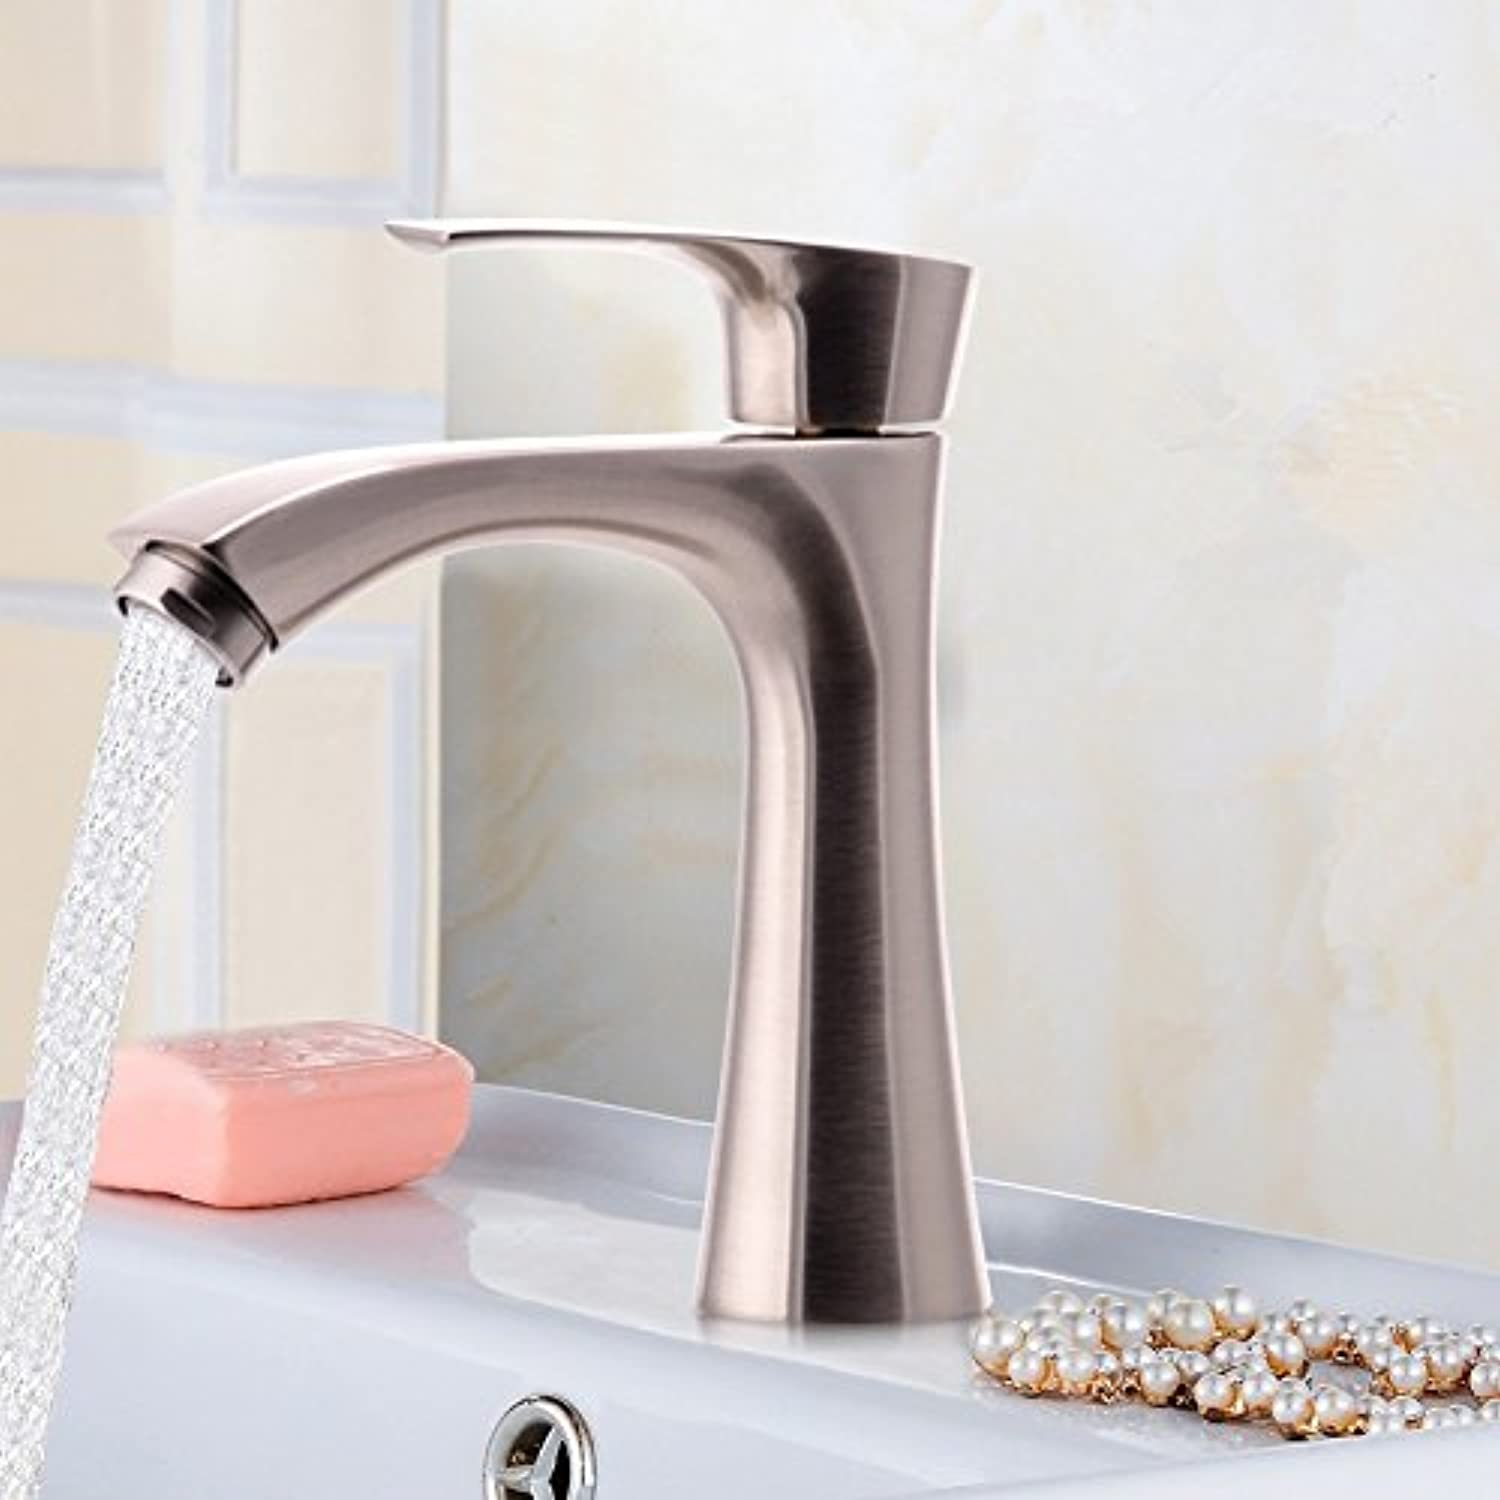 ETERNAL QUALITY Bathroom Sink Basin Tap Brass Mixer Tap Washroom Mixer Faucet Single cold basin faucet 304 Stainless steel single cold basin tap the up or down on a vanit